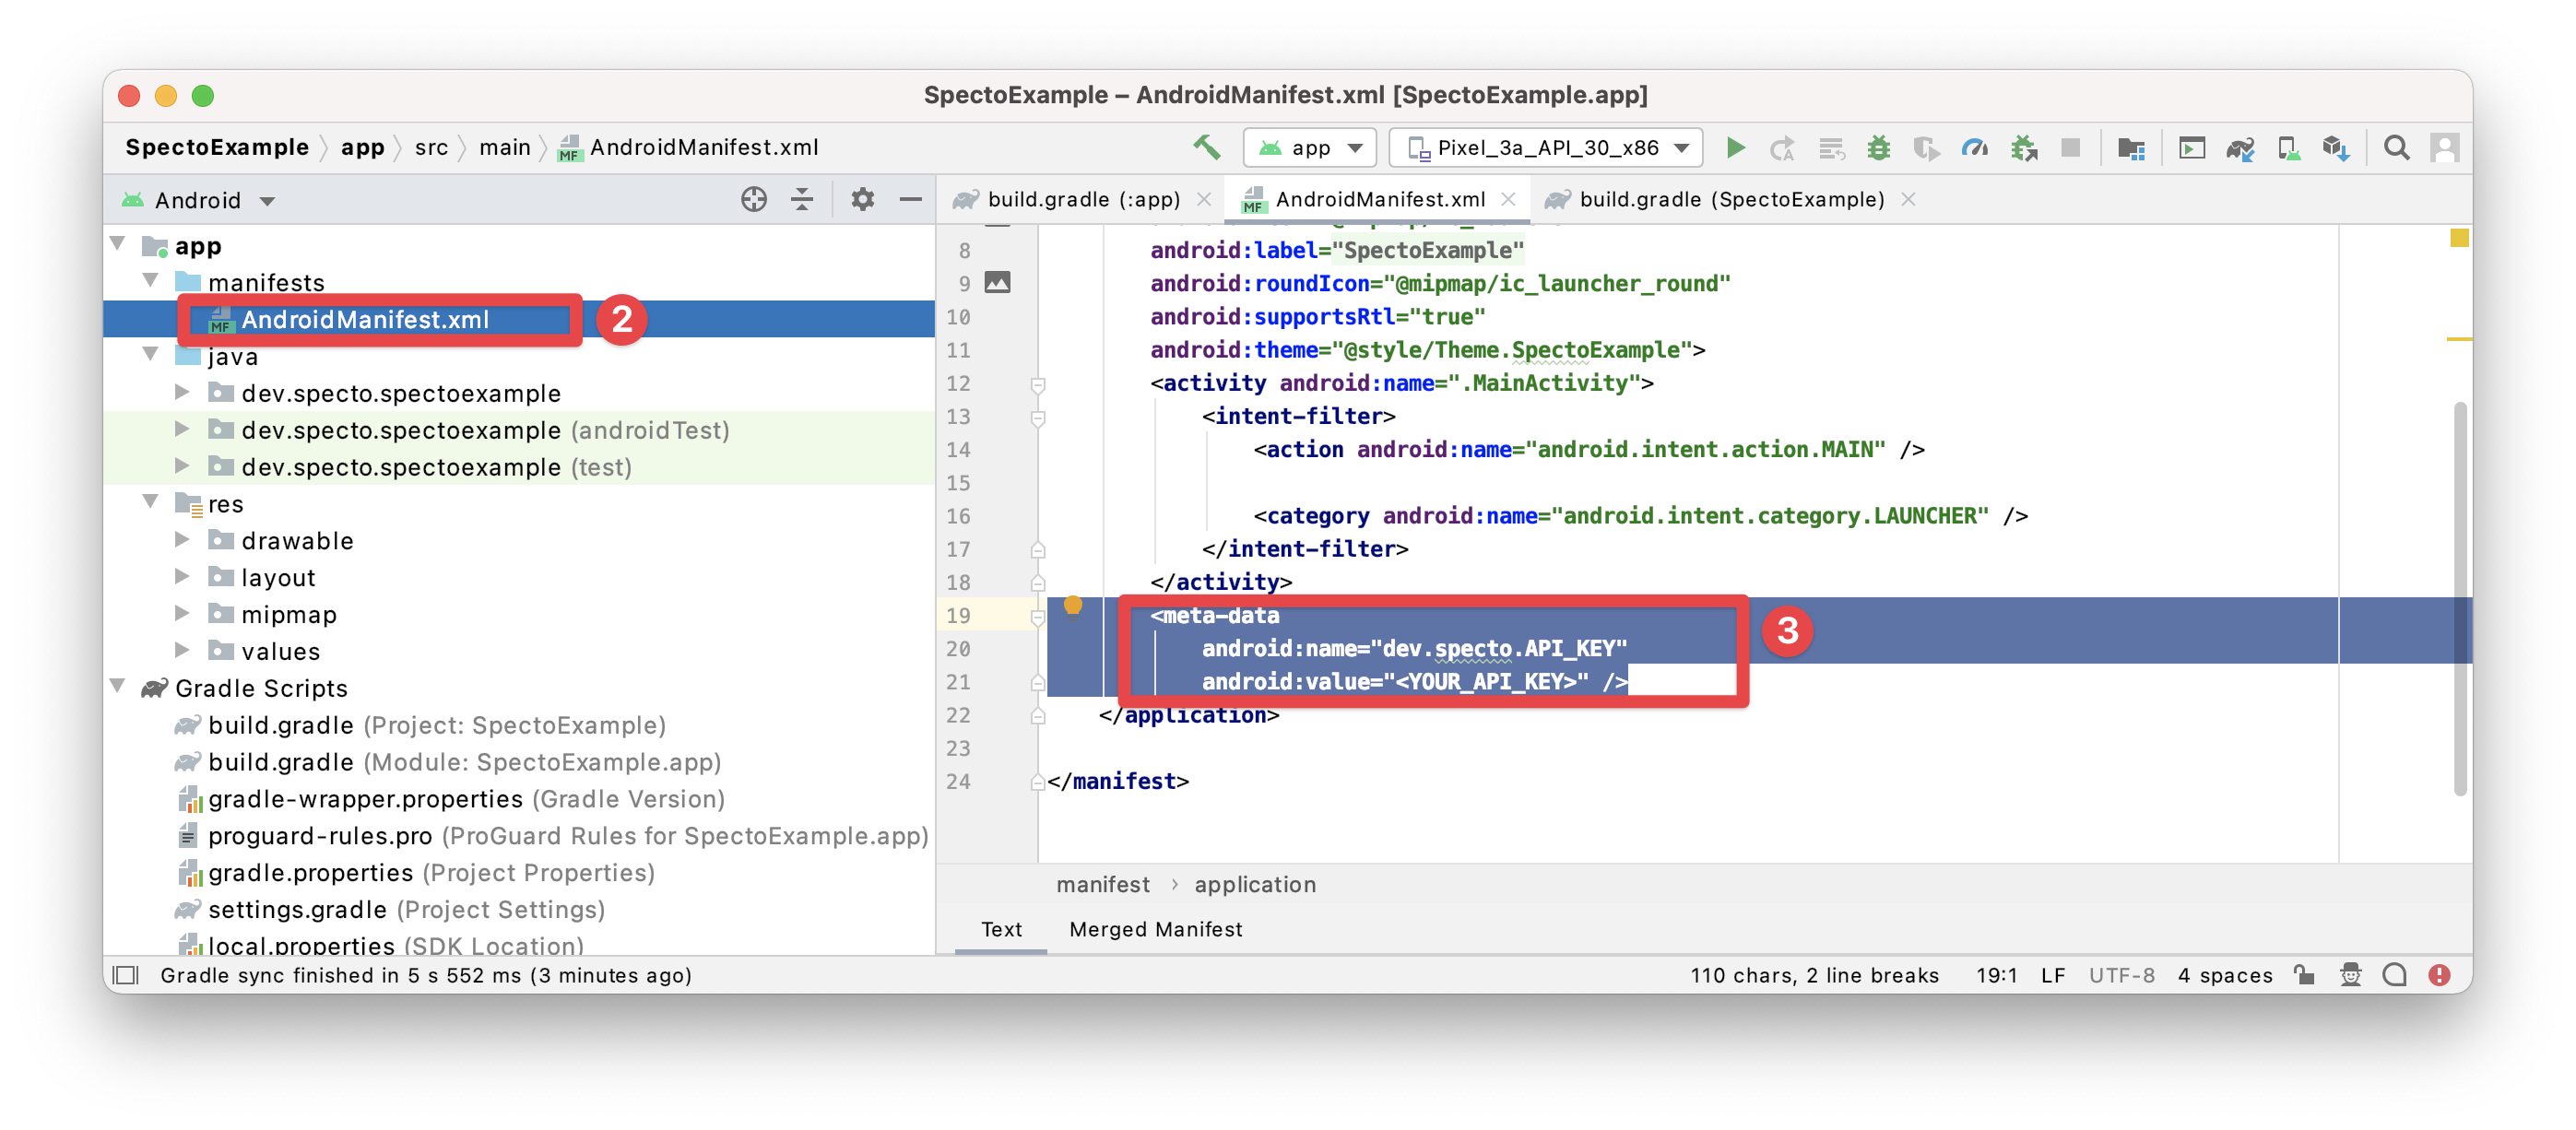 Setting the Specto API key in AndroidManifest.xml (steps 2-3)